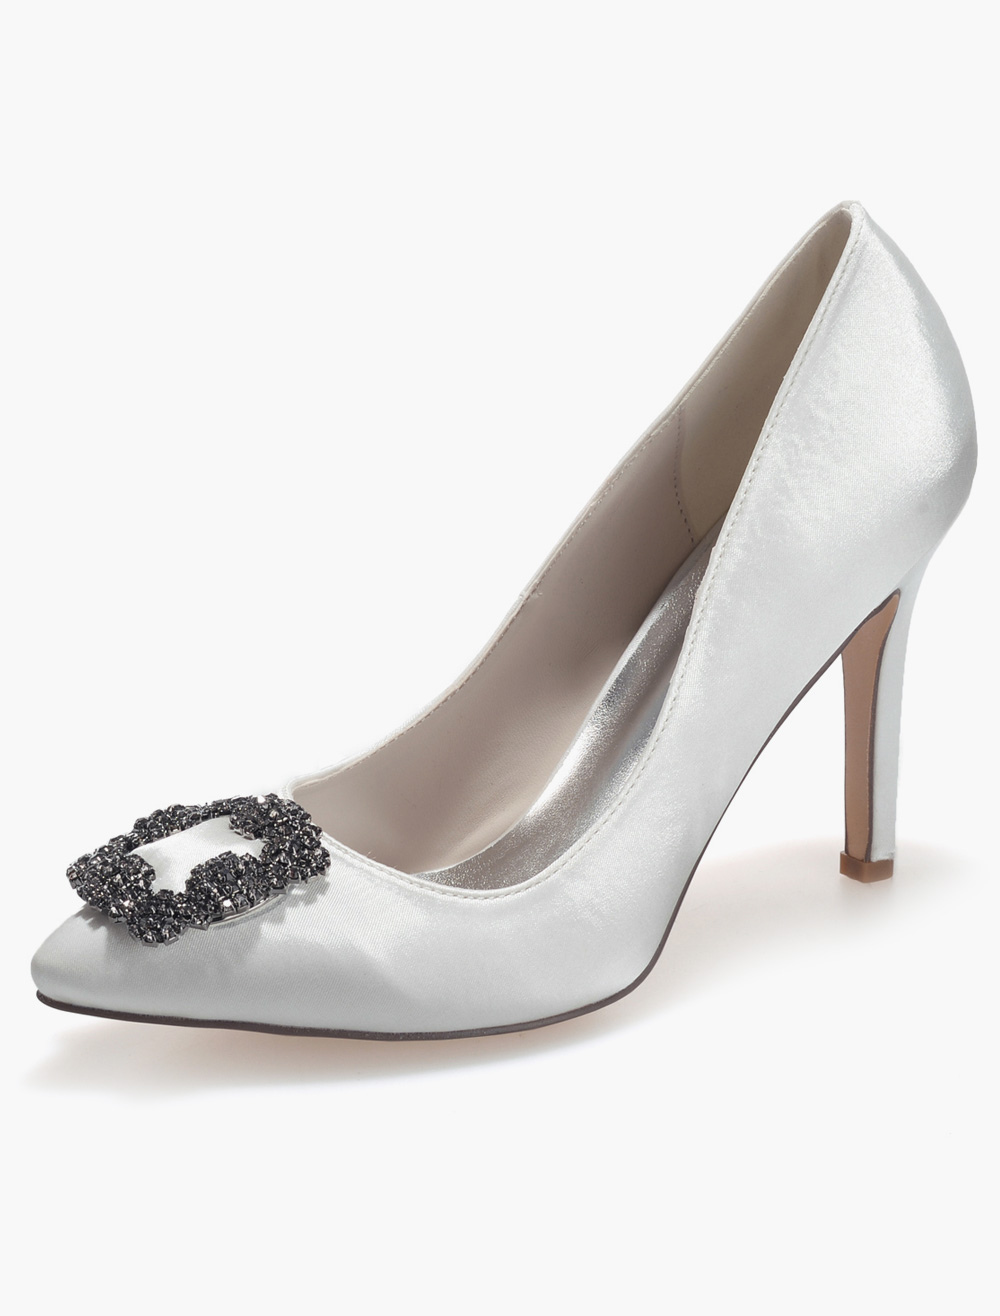 Glamour Rhinestones Pointed Toe Satin Pumps For Bride